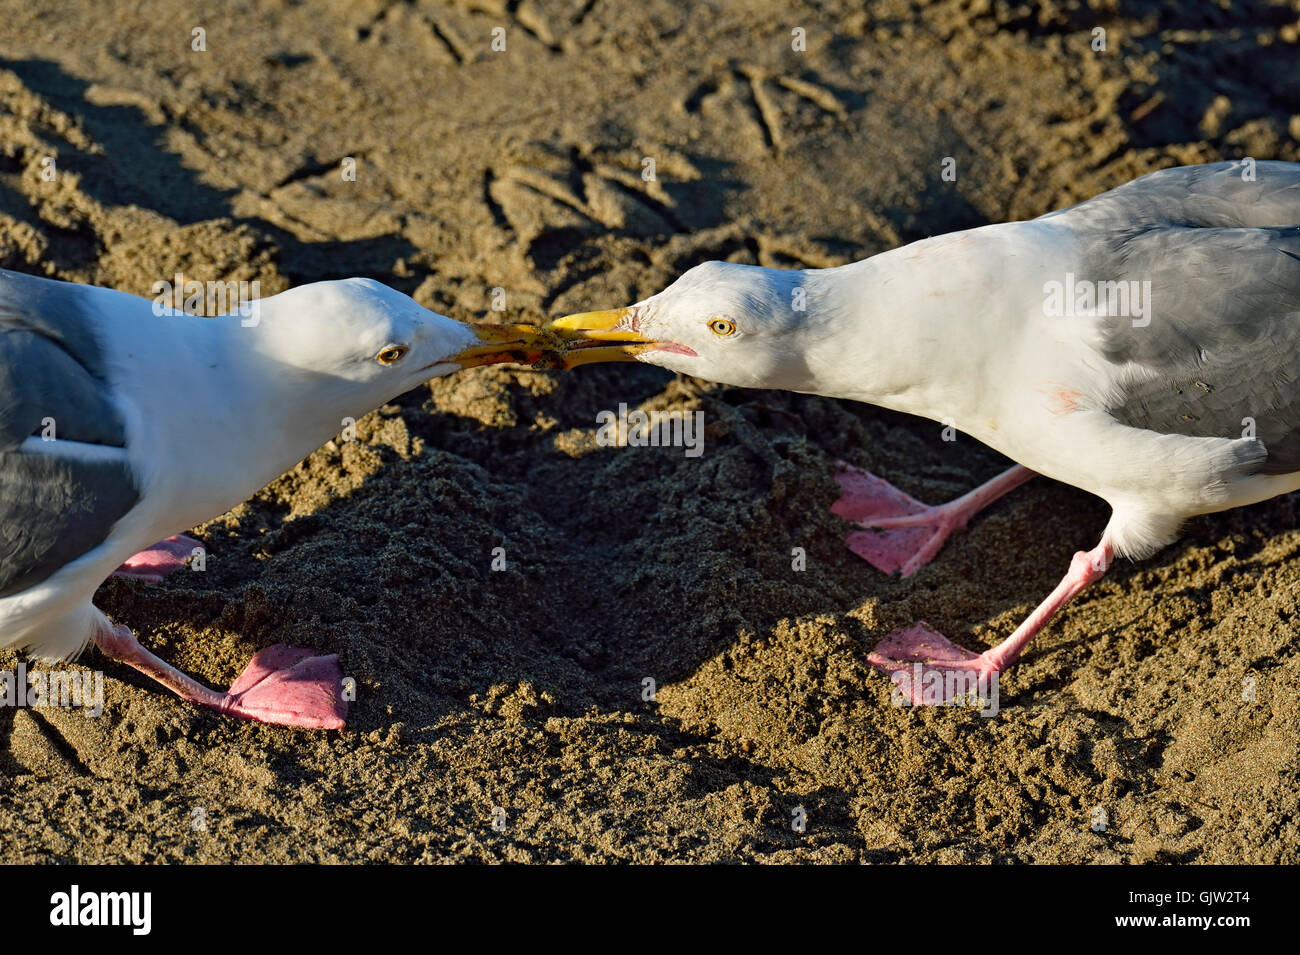 Western Gull (Larus occidentalis) A pair of adults tugging on a morsel of food, San Simeon, California, USA - Stock Image